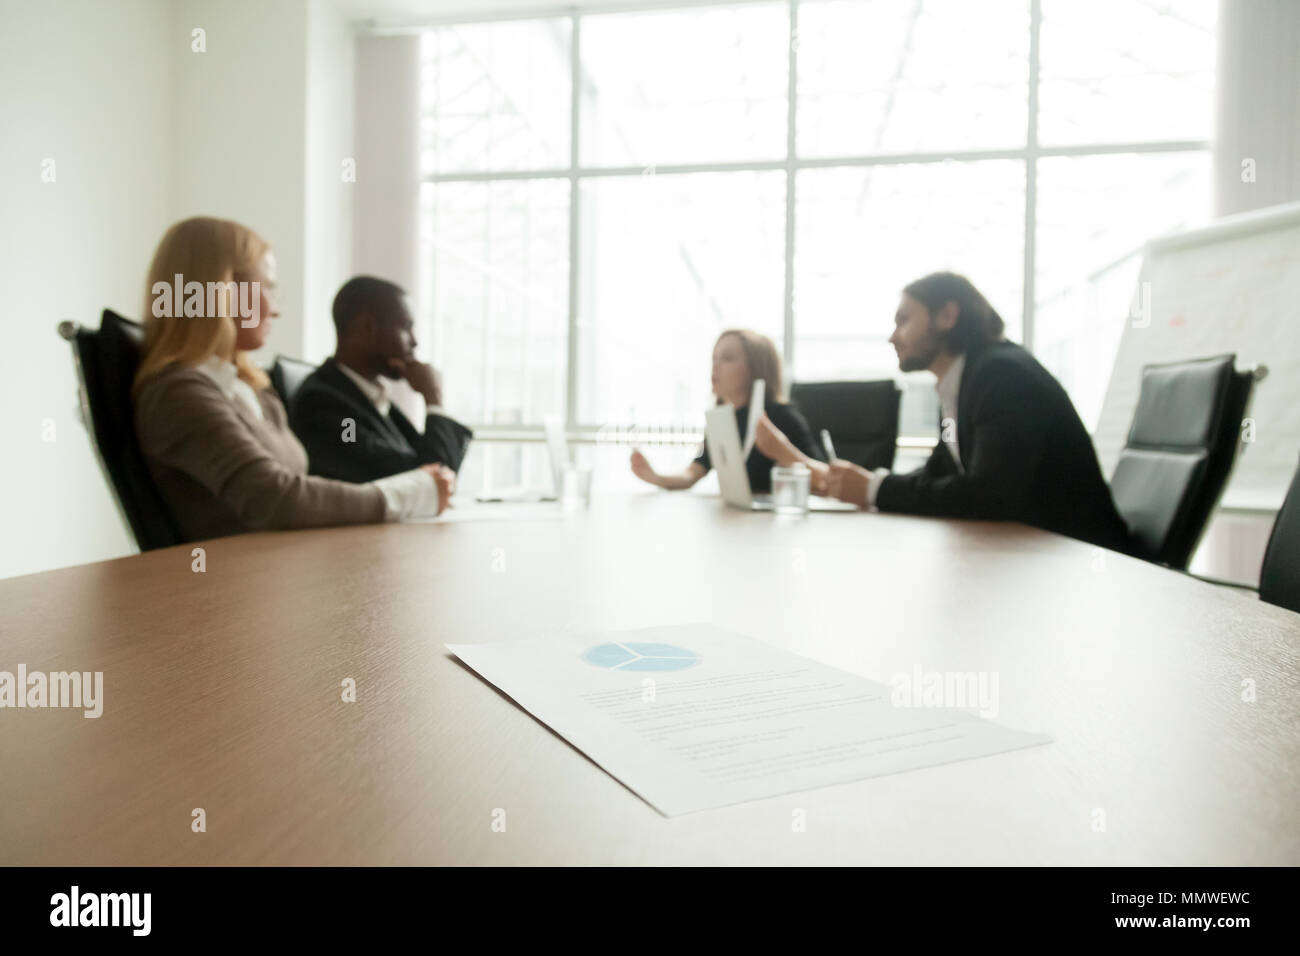 Business plan on conference table with executives meeting at bac - Stock Image